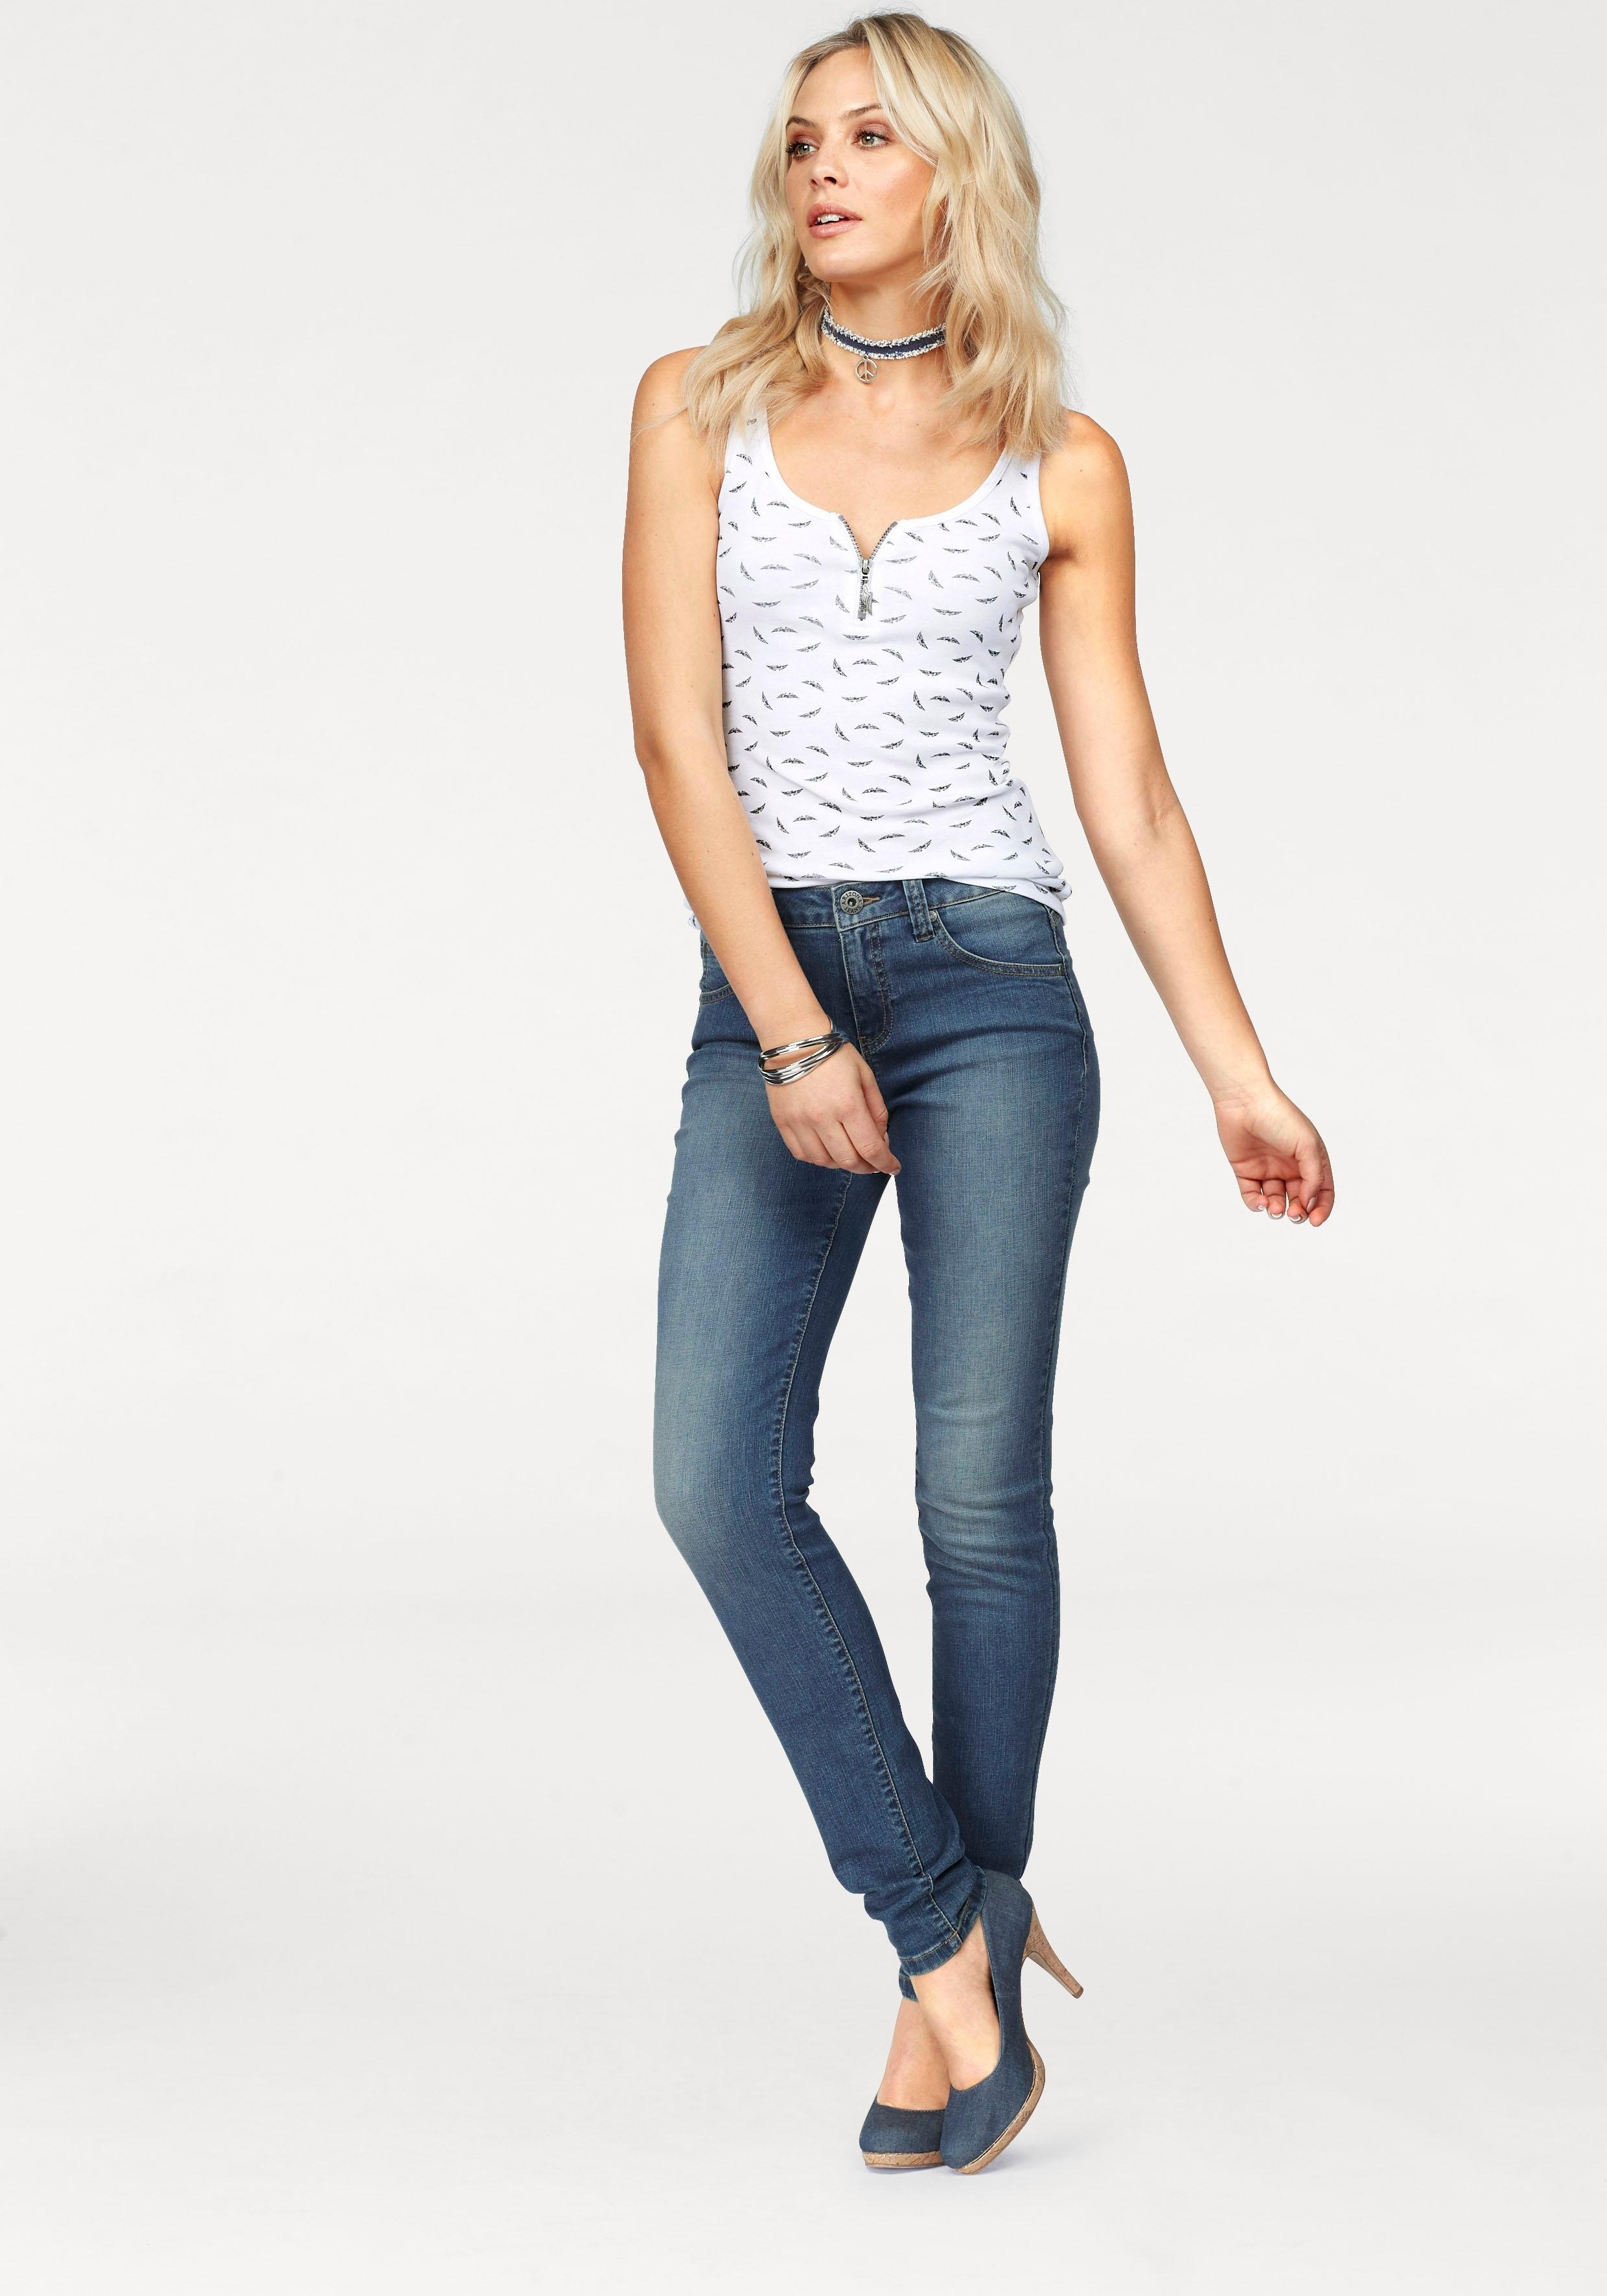 jeans Online Slim Arizona Kopen Fit Nu vy0OmN8nwP